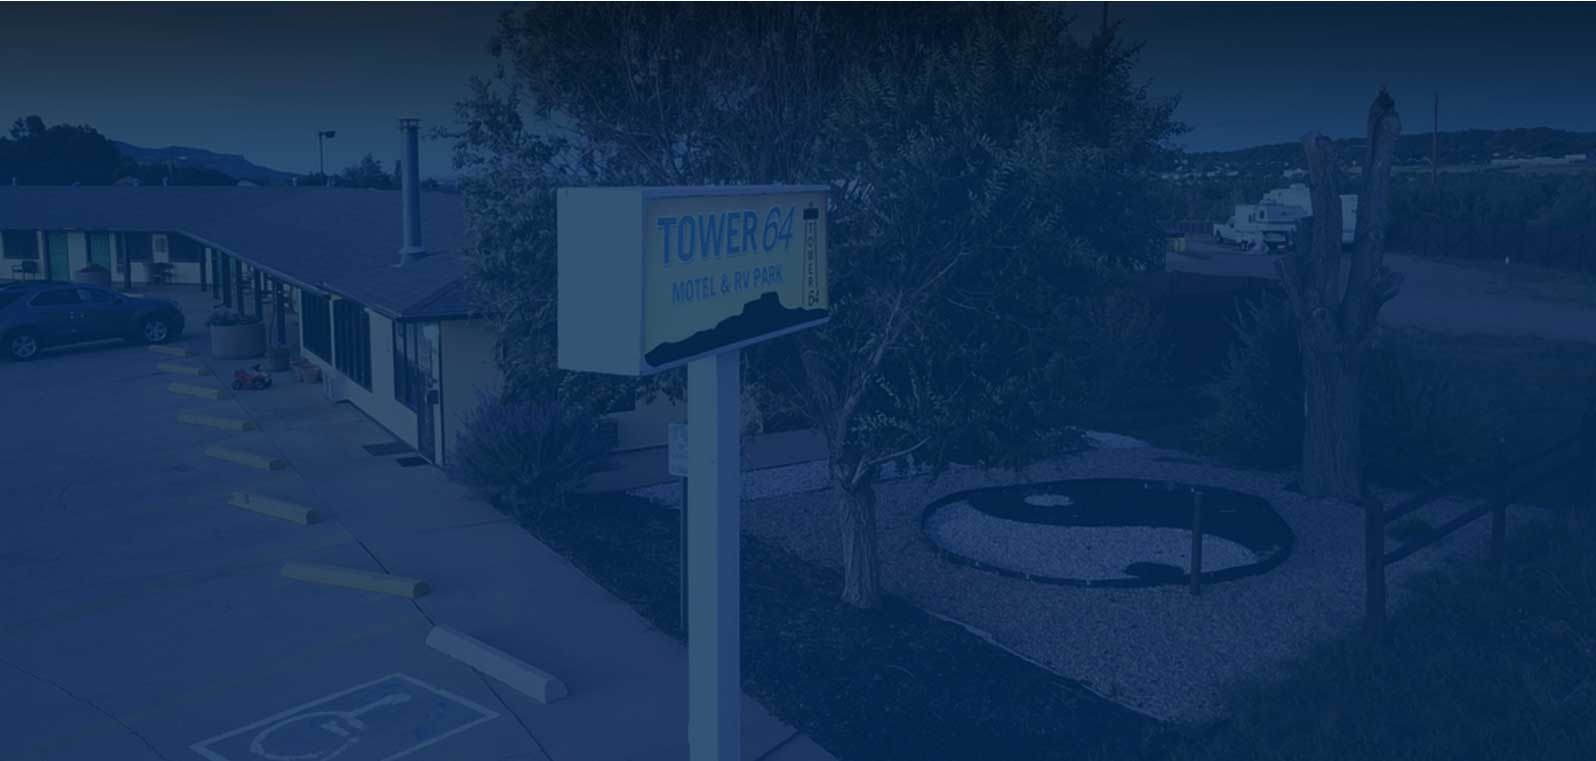 Tower 64 Motel & RV Park